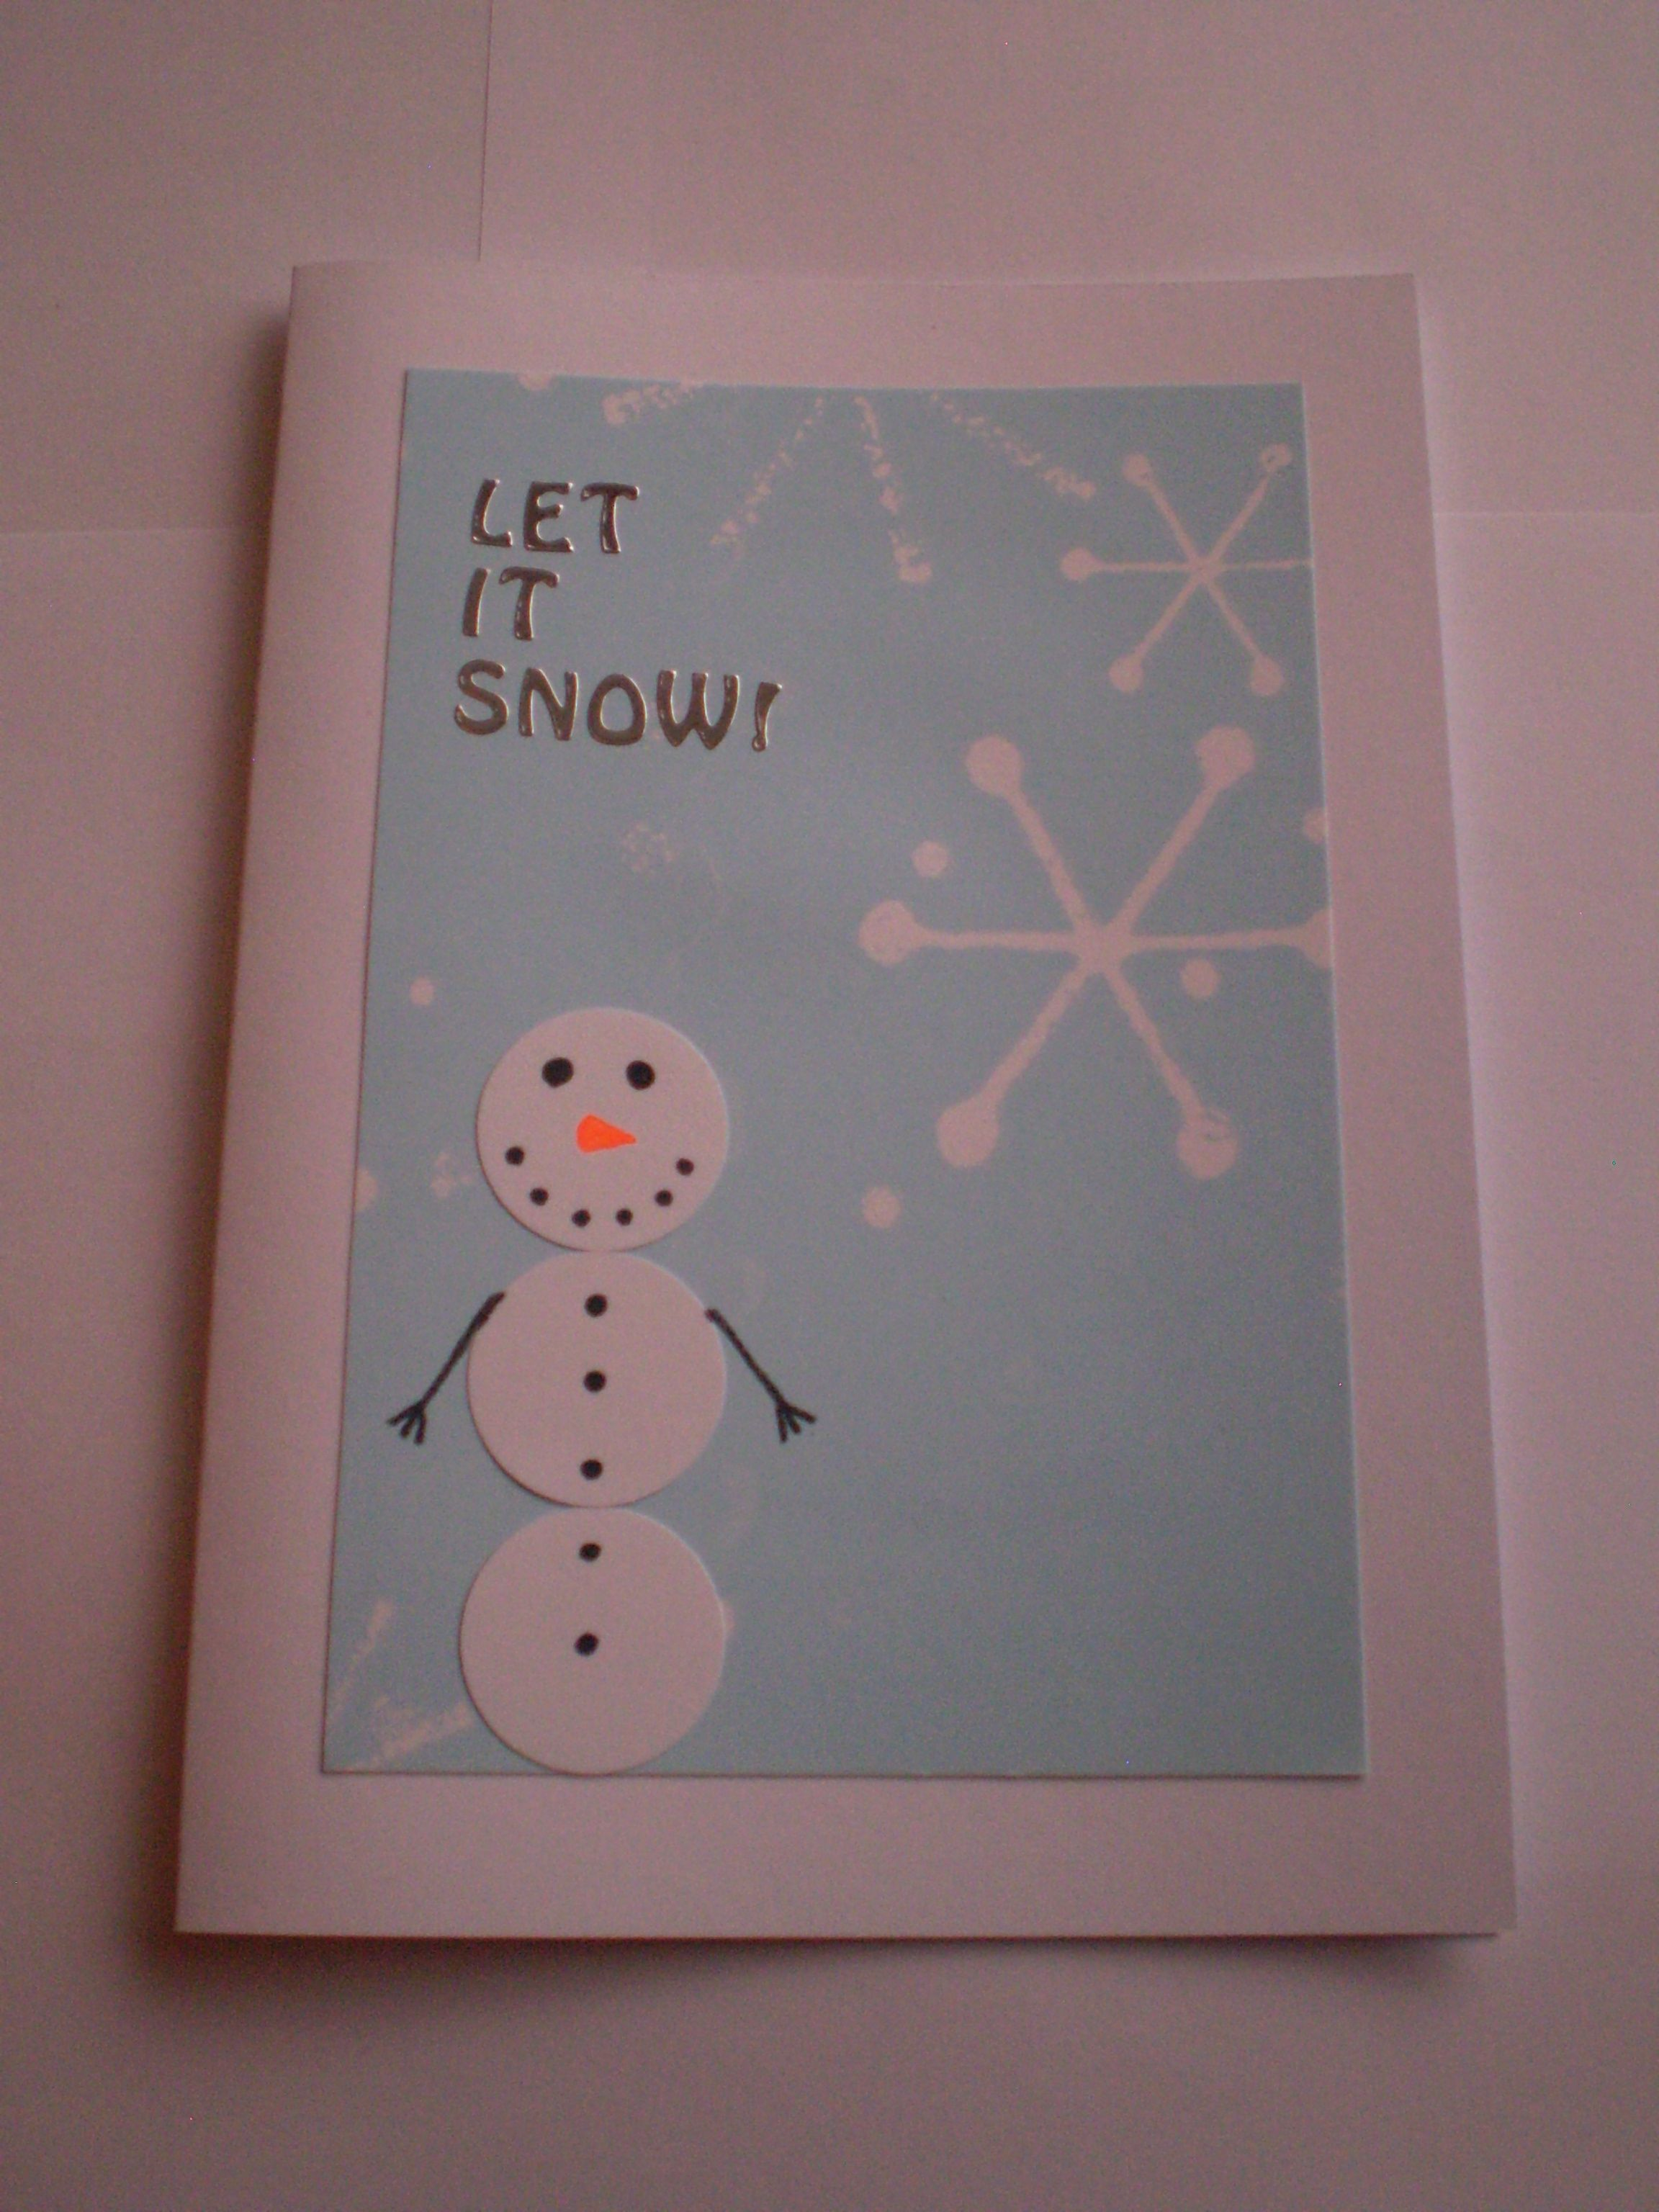 Craft Ideas For Christmas Cards Part - 46: Let It Snow Snowman With Snowflakes Christmas Card - Christmas Card Craft  Ideas Homemade Diy